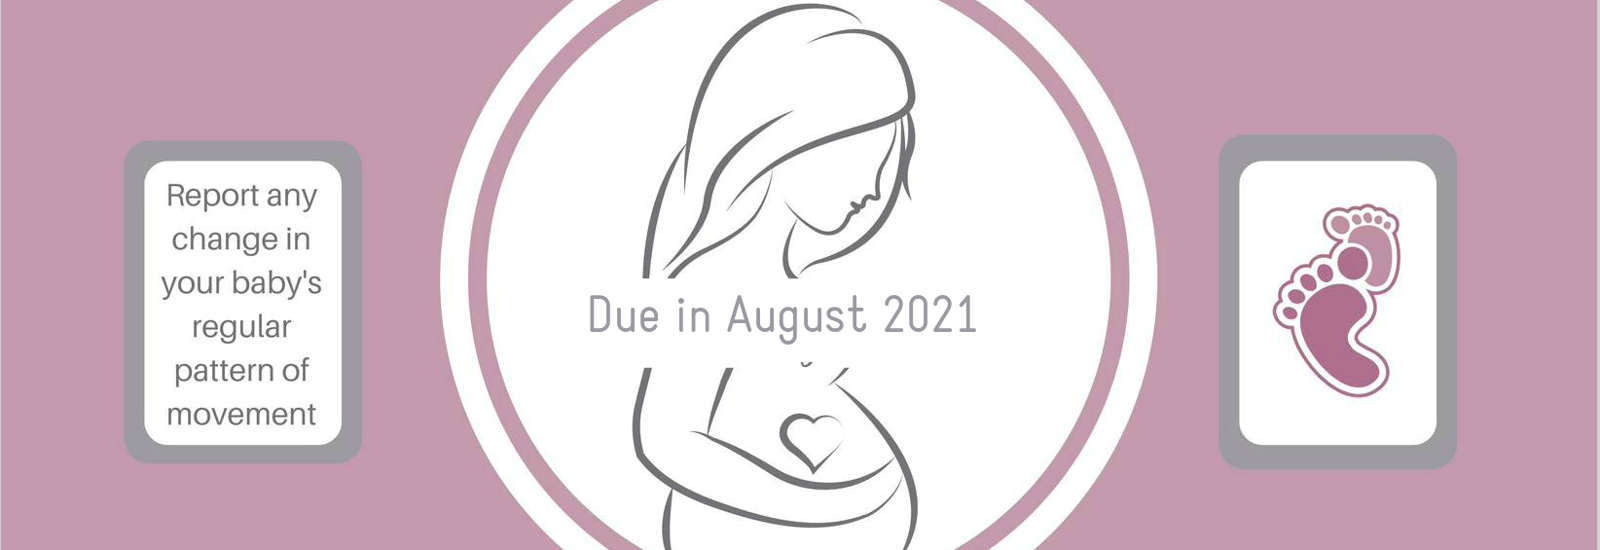 Due in August 2021